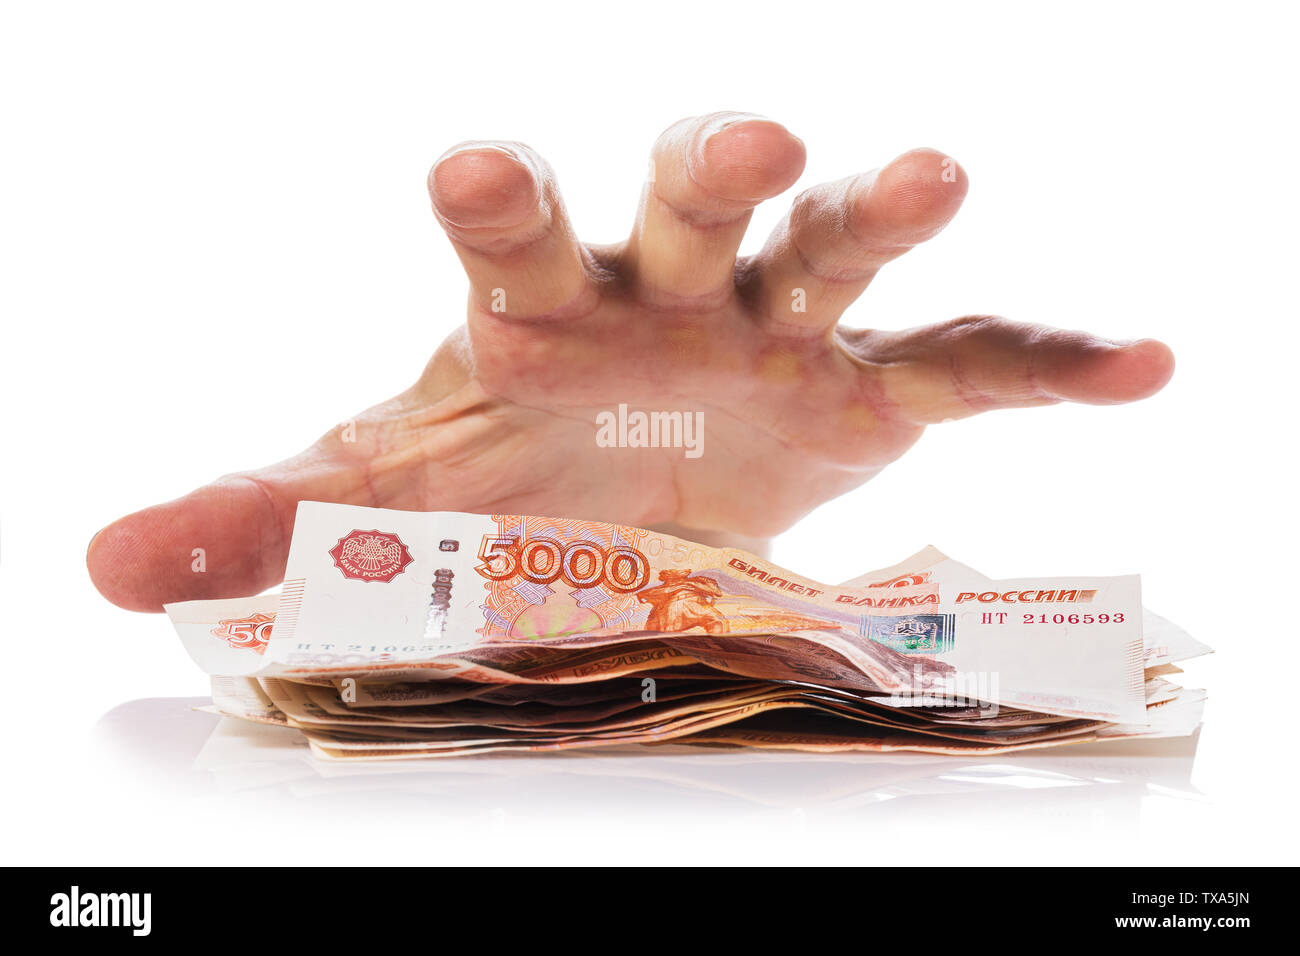 Hand about to grab the money, Isolated on white background. Concept on theft or fraud with currency - Stock Image